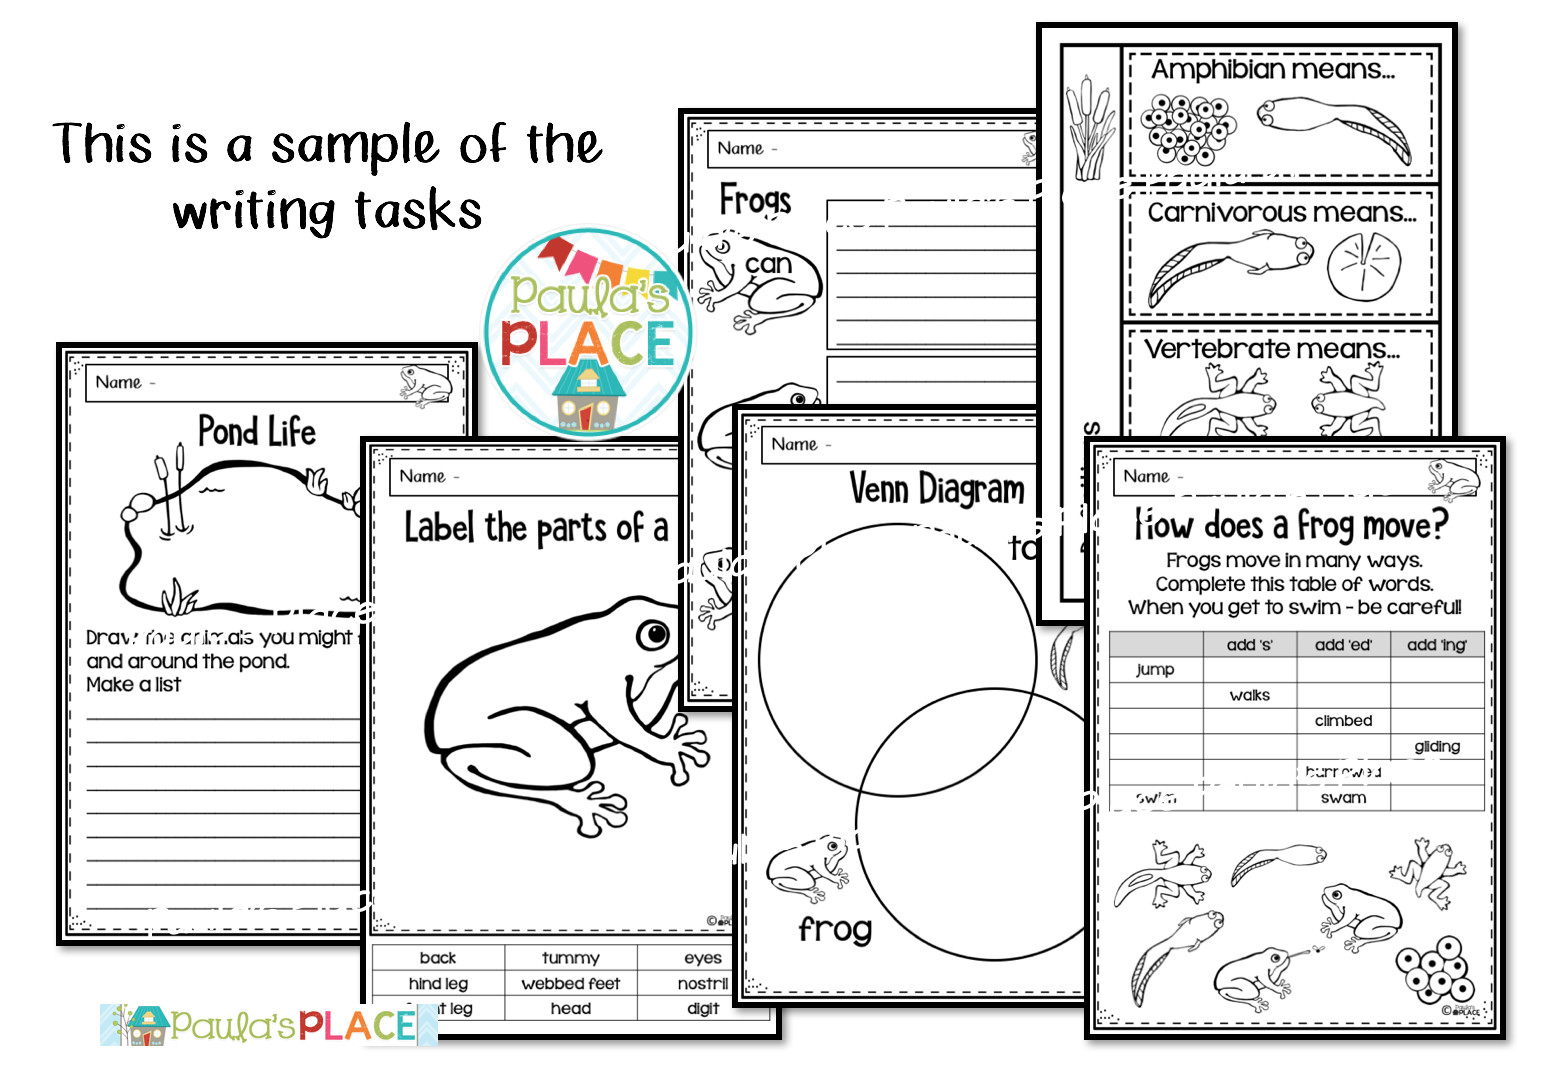 Paula's Place: Frogs and Ladybugs